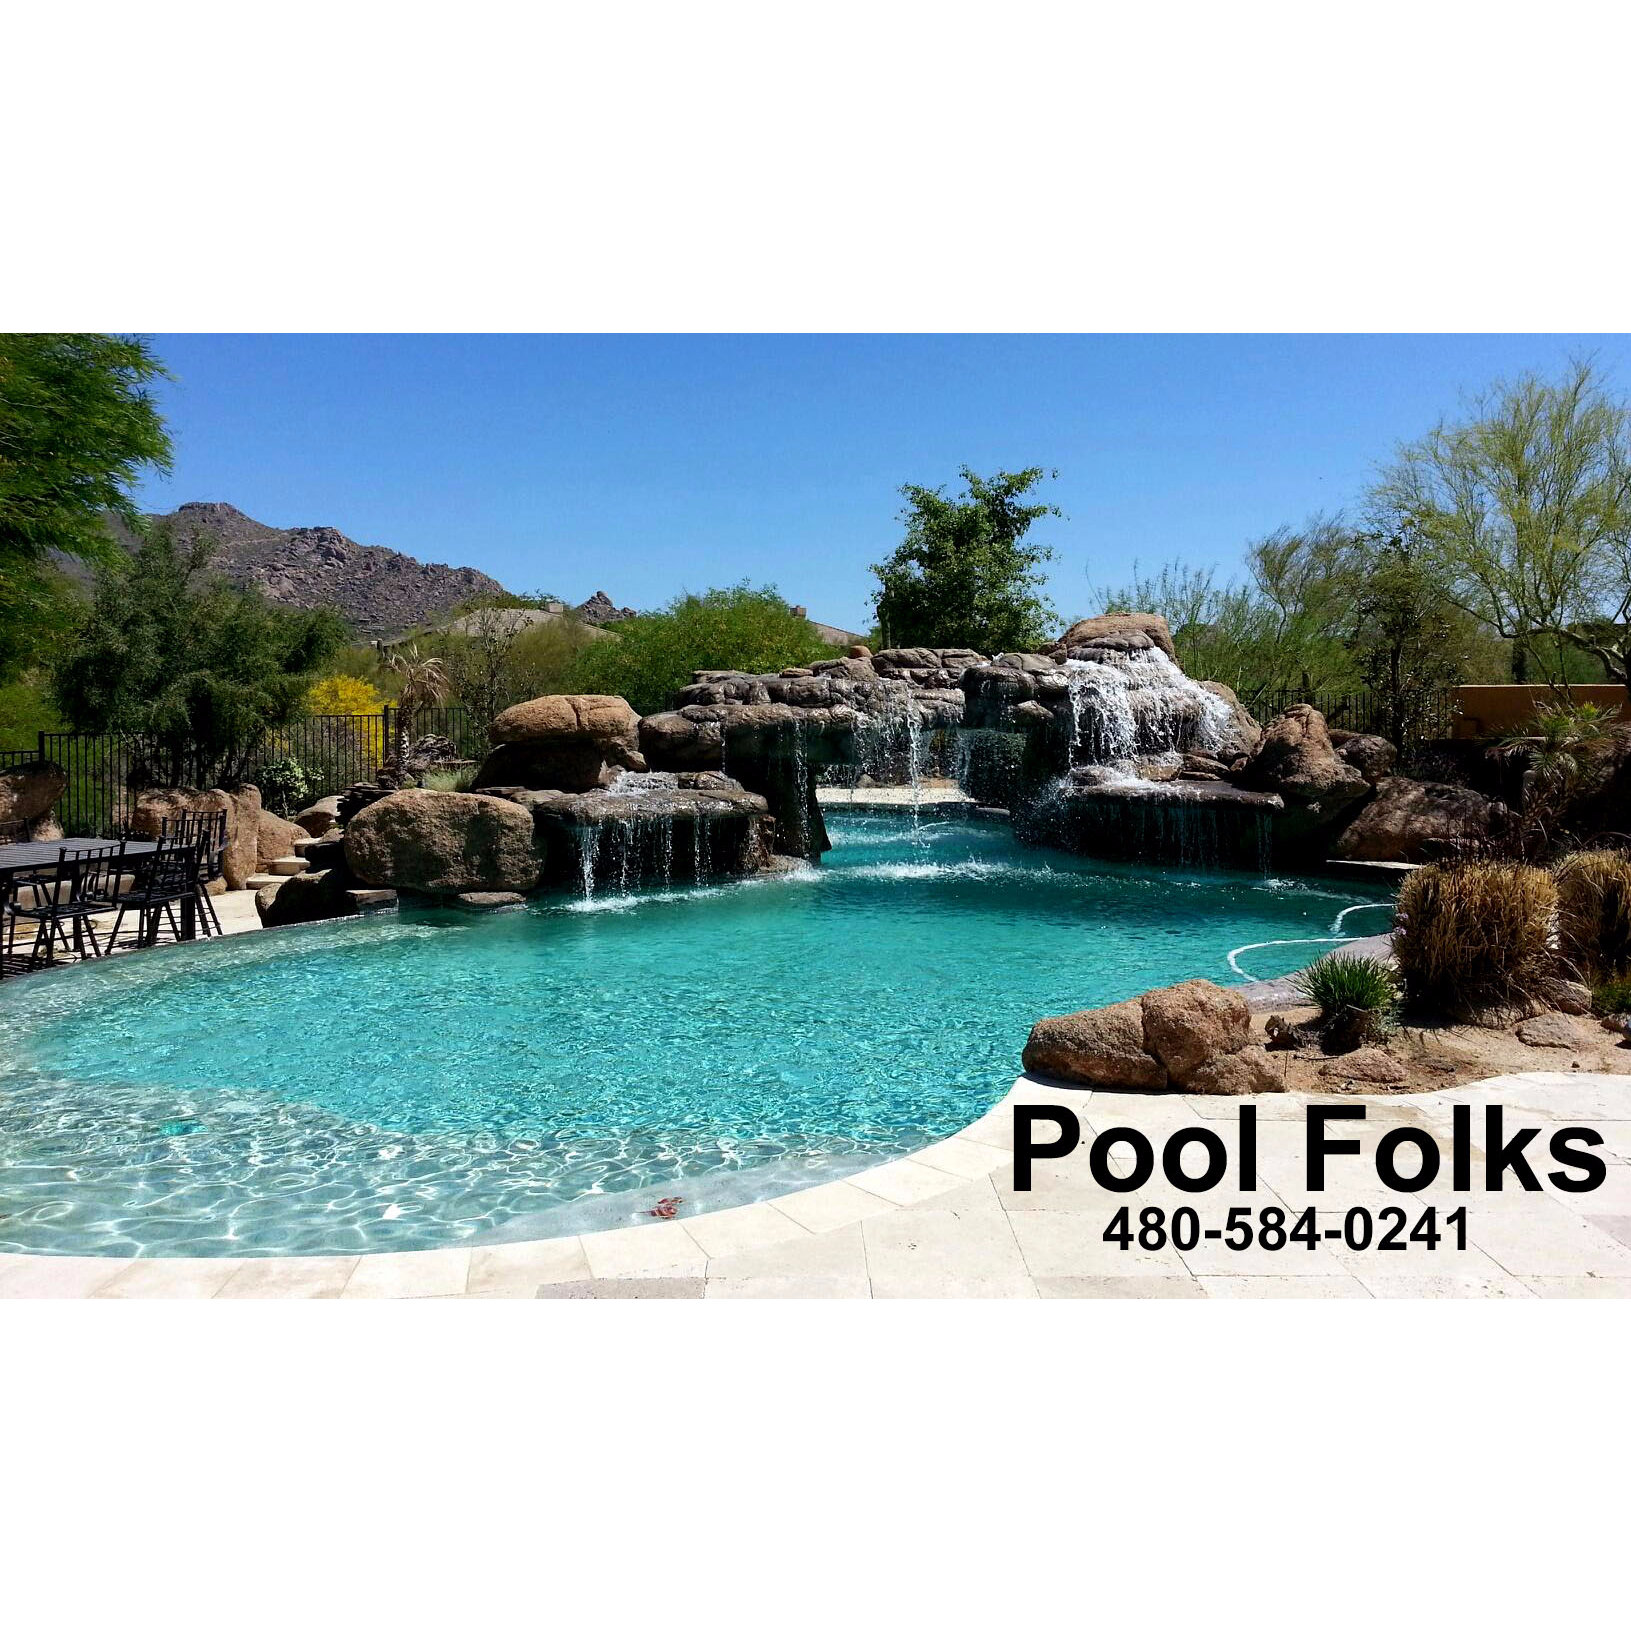 Pool Folks In Scottsdale Az 480 584 0